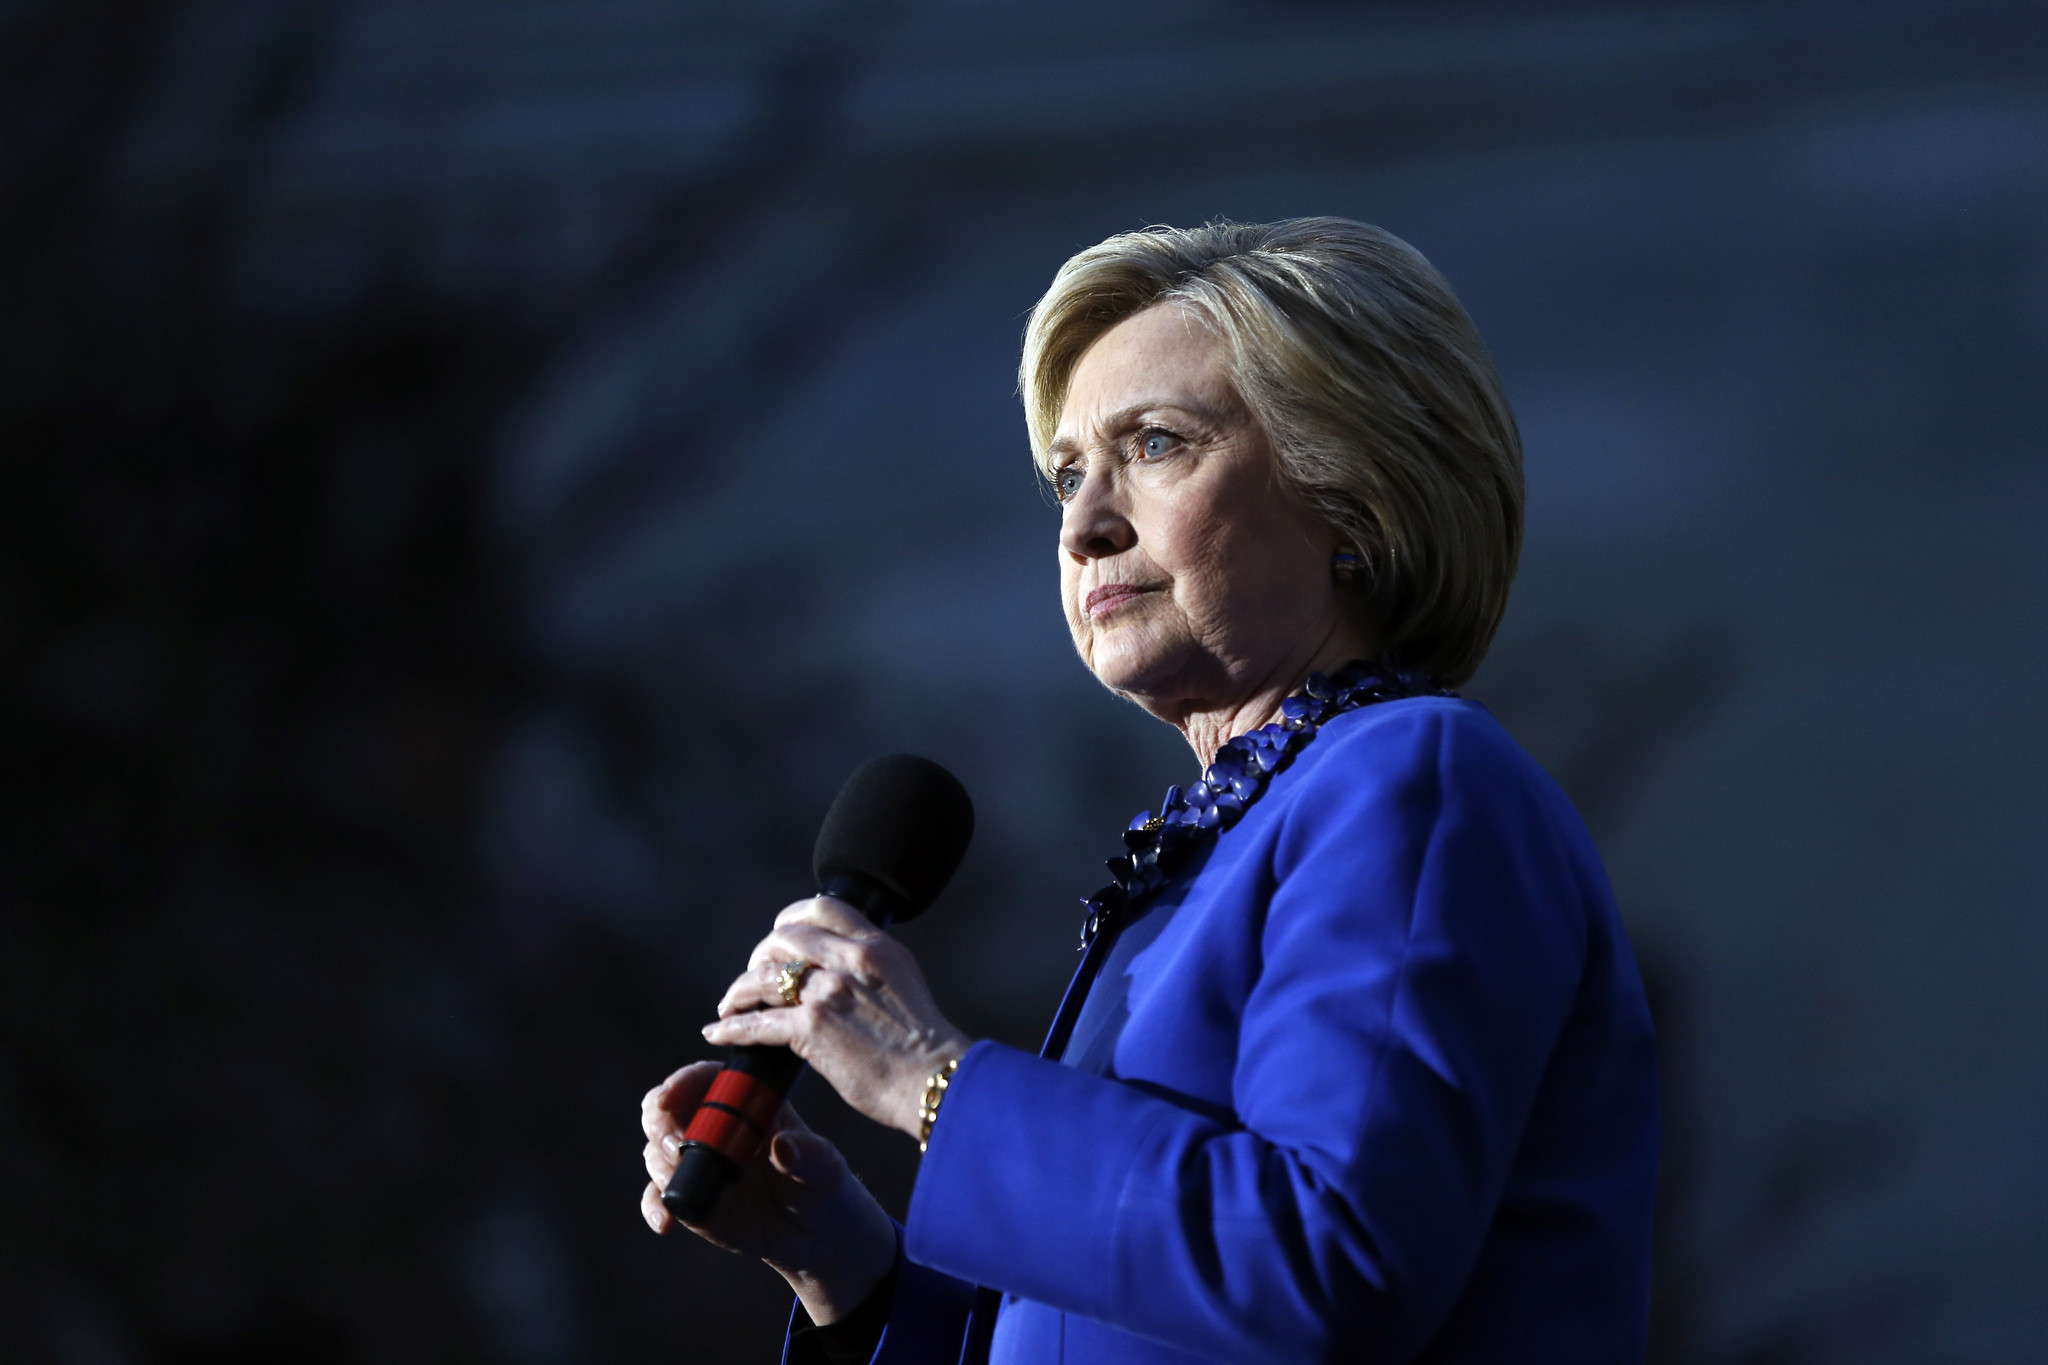 What Hillary Clinton said behind closed doors - Chicago ...